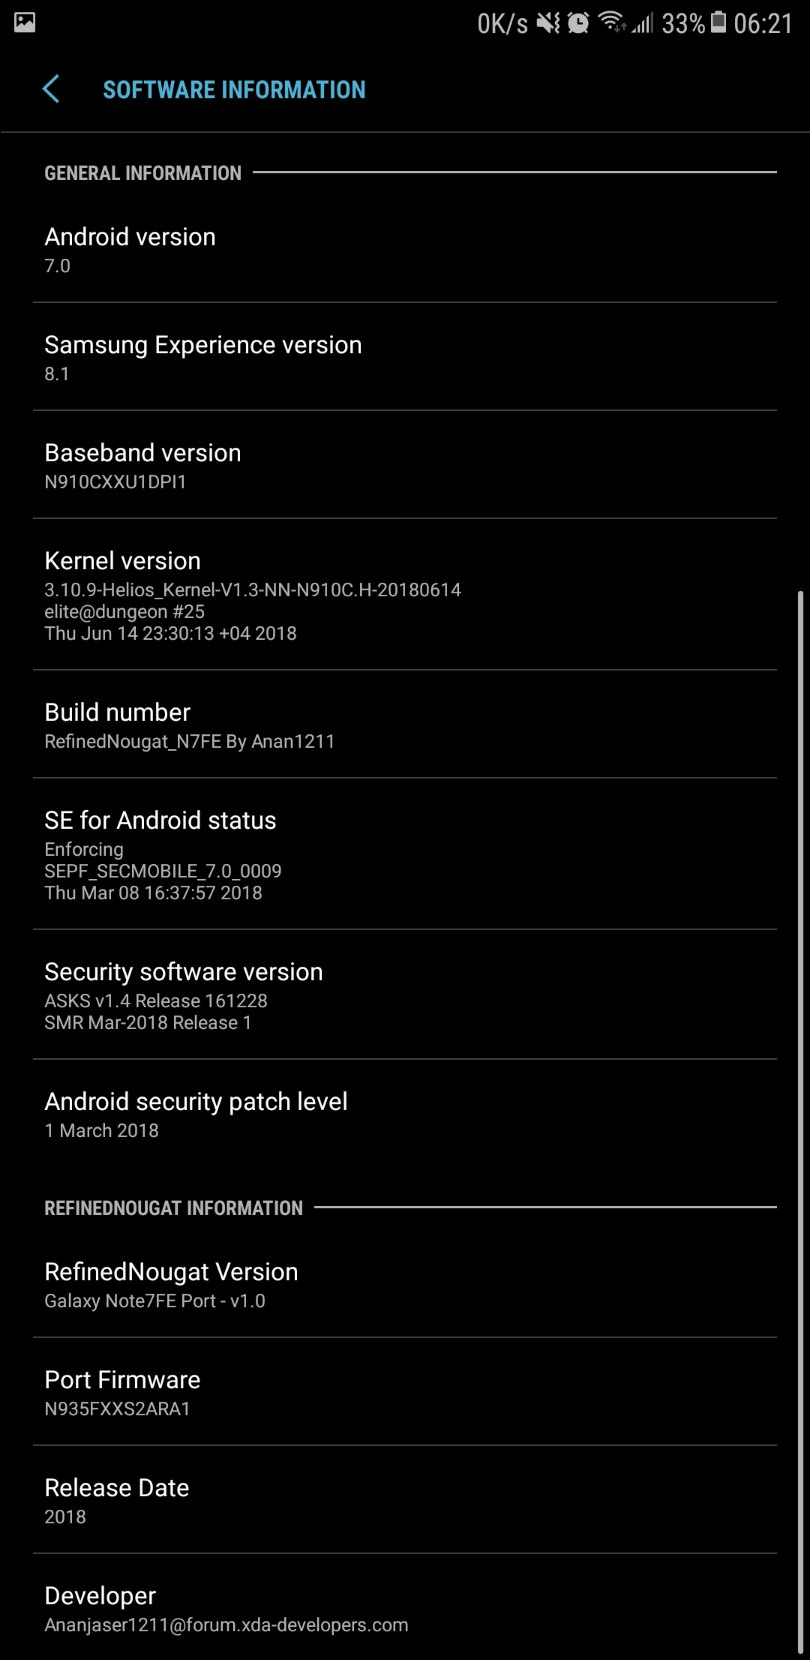 Refined Nougat 7.0 ROM Note 7 FE Port for Galaxy Note 4 Mohamedovic 10